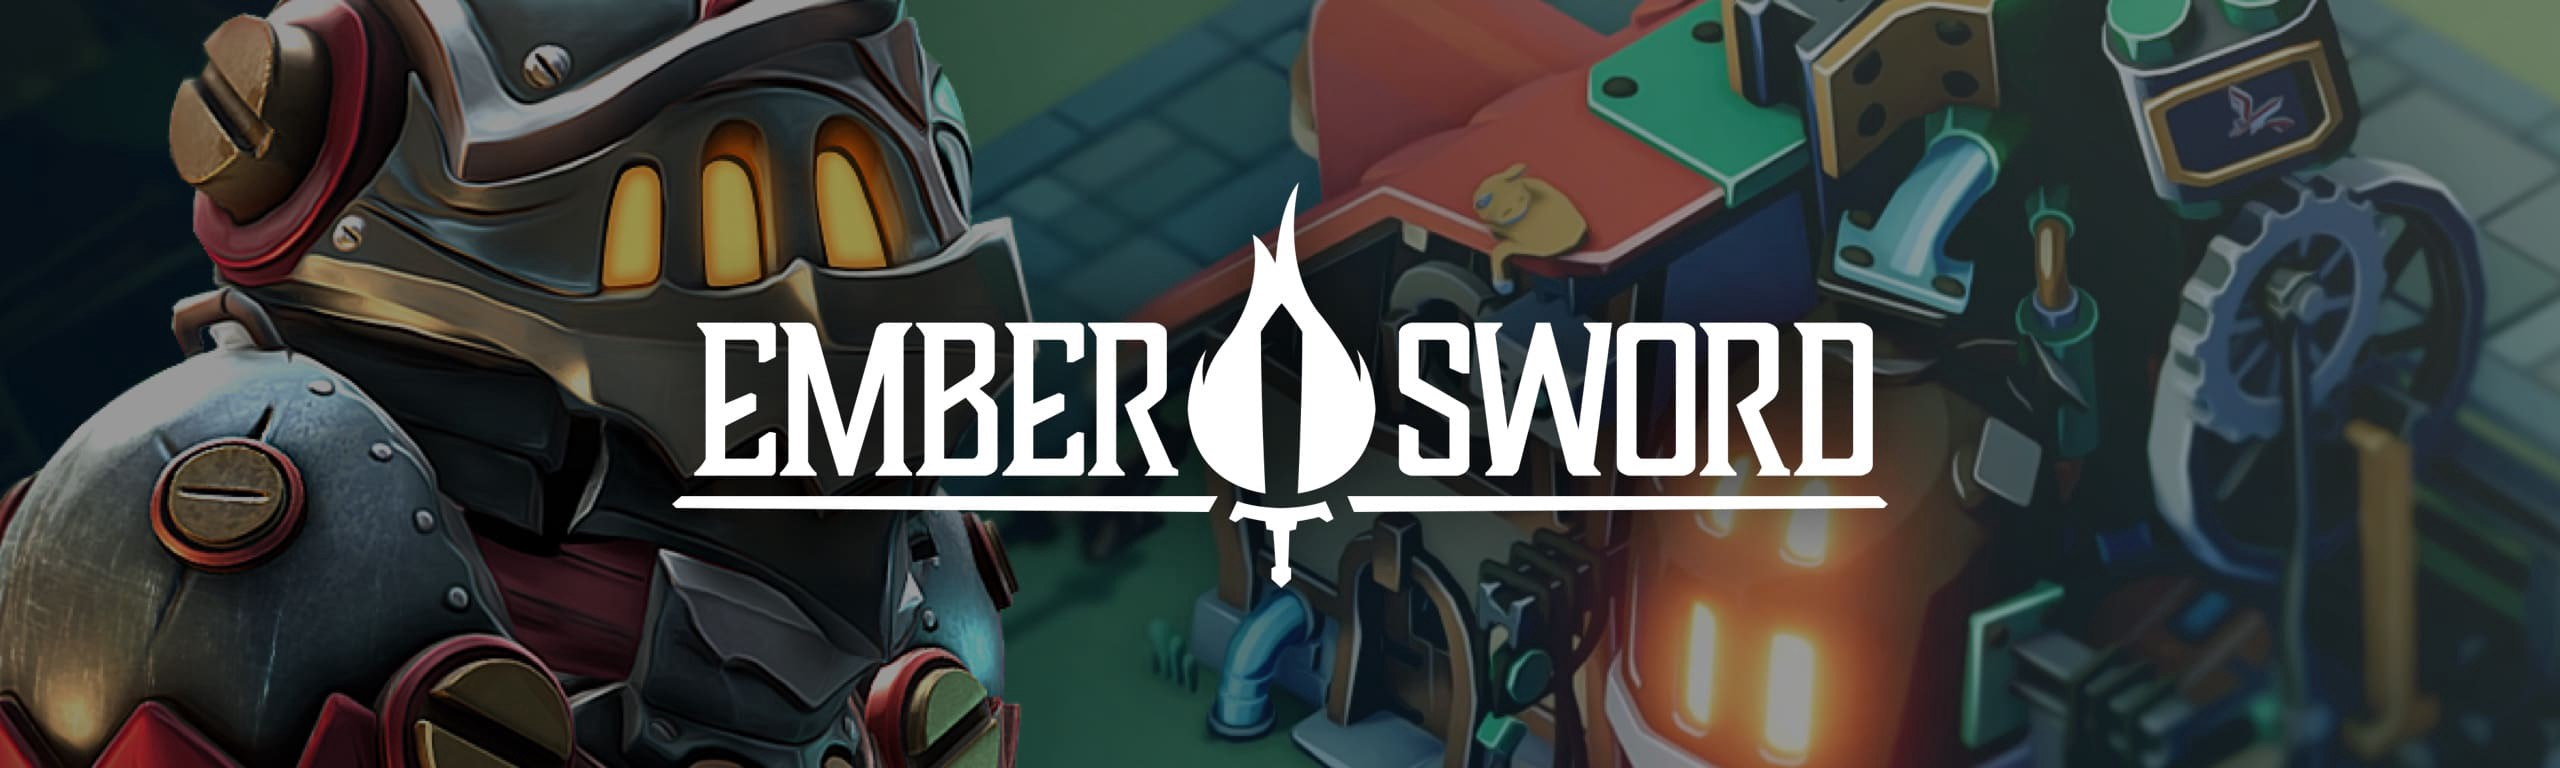 Ember Sword, Upcoming MMORPG and the Future of Gaming